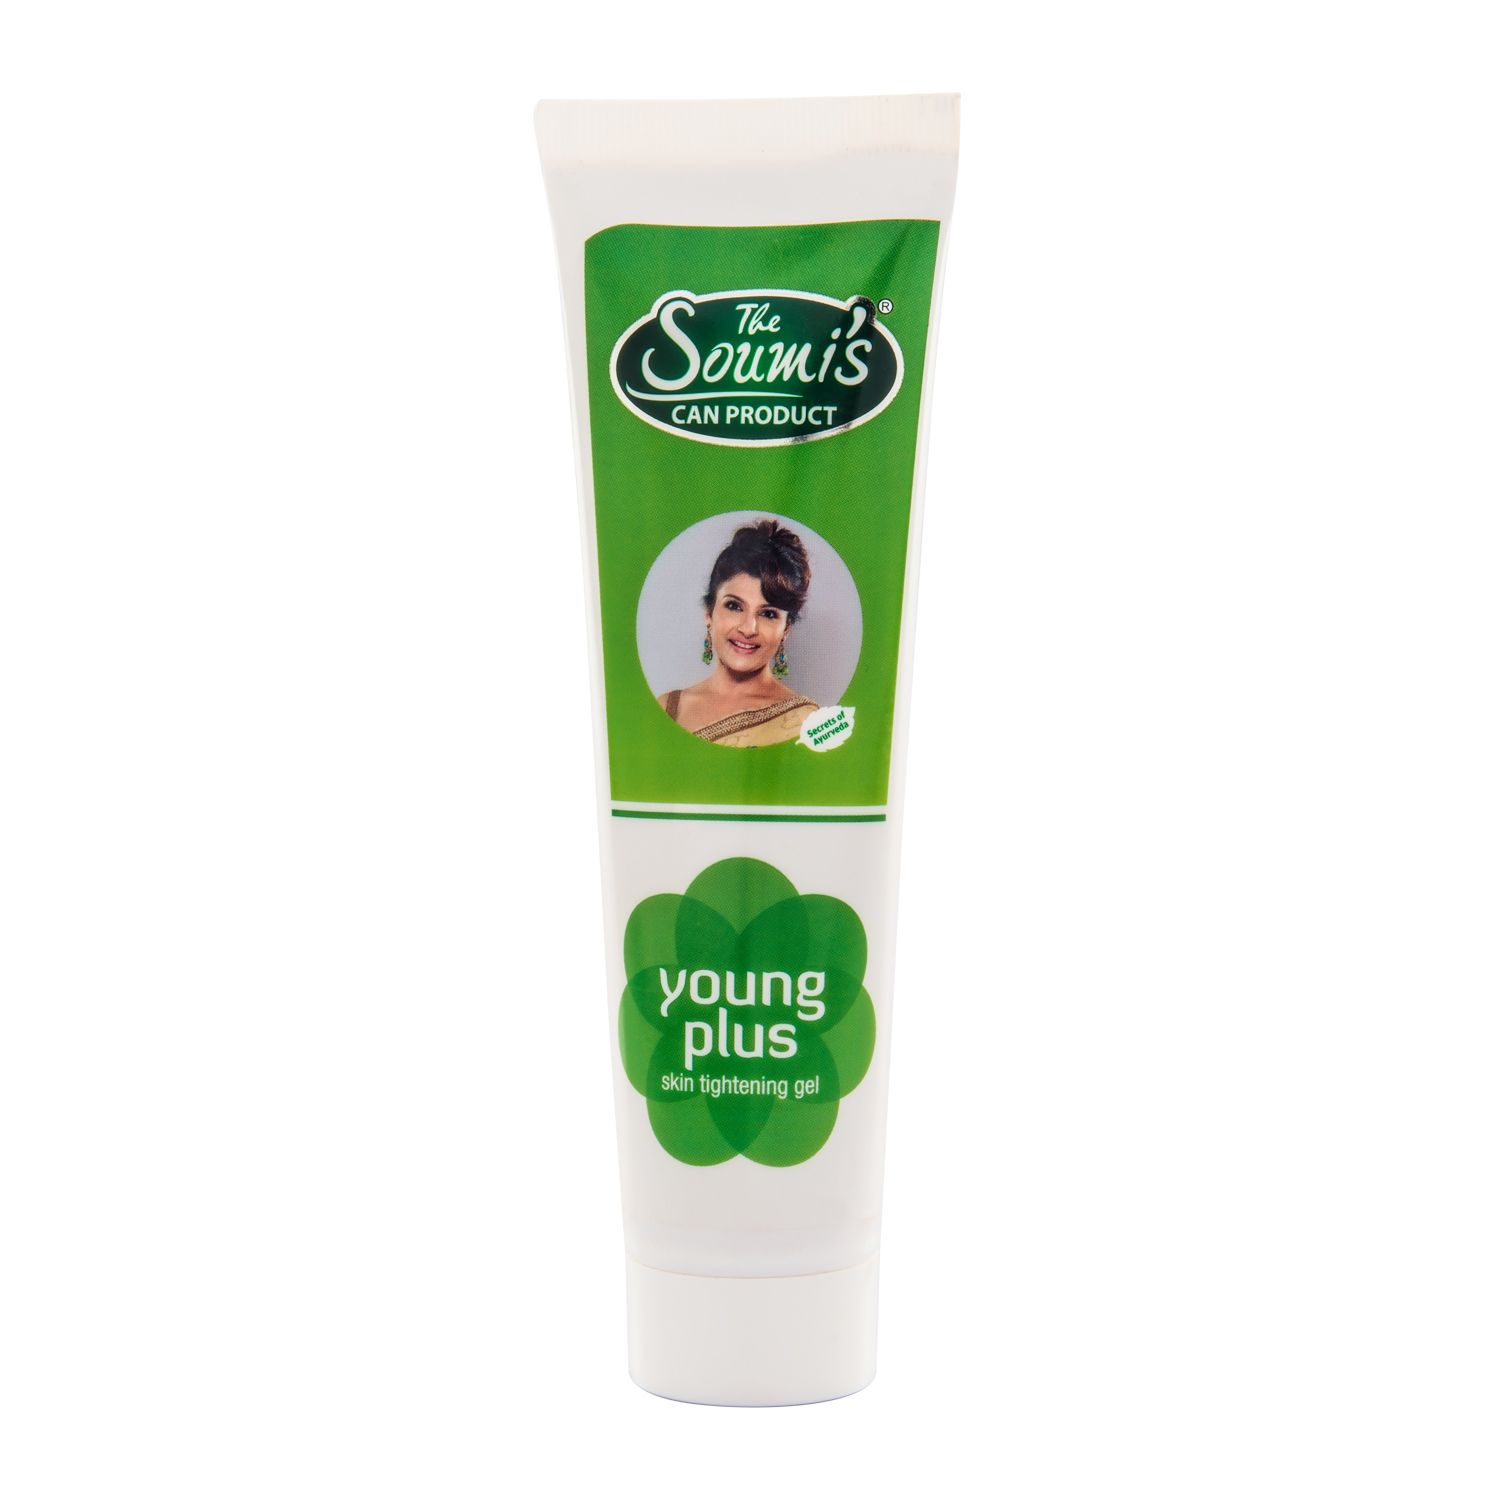 Young Plus Skin Tightening Gel 100ml Enhances The Elasticity Of Emina Bare With Me Mineral Loose Powder Gives A Younger Look Apply Evenly On Face Keeps For 5 Mints And Then Washes